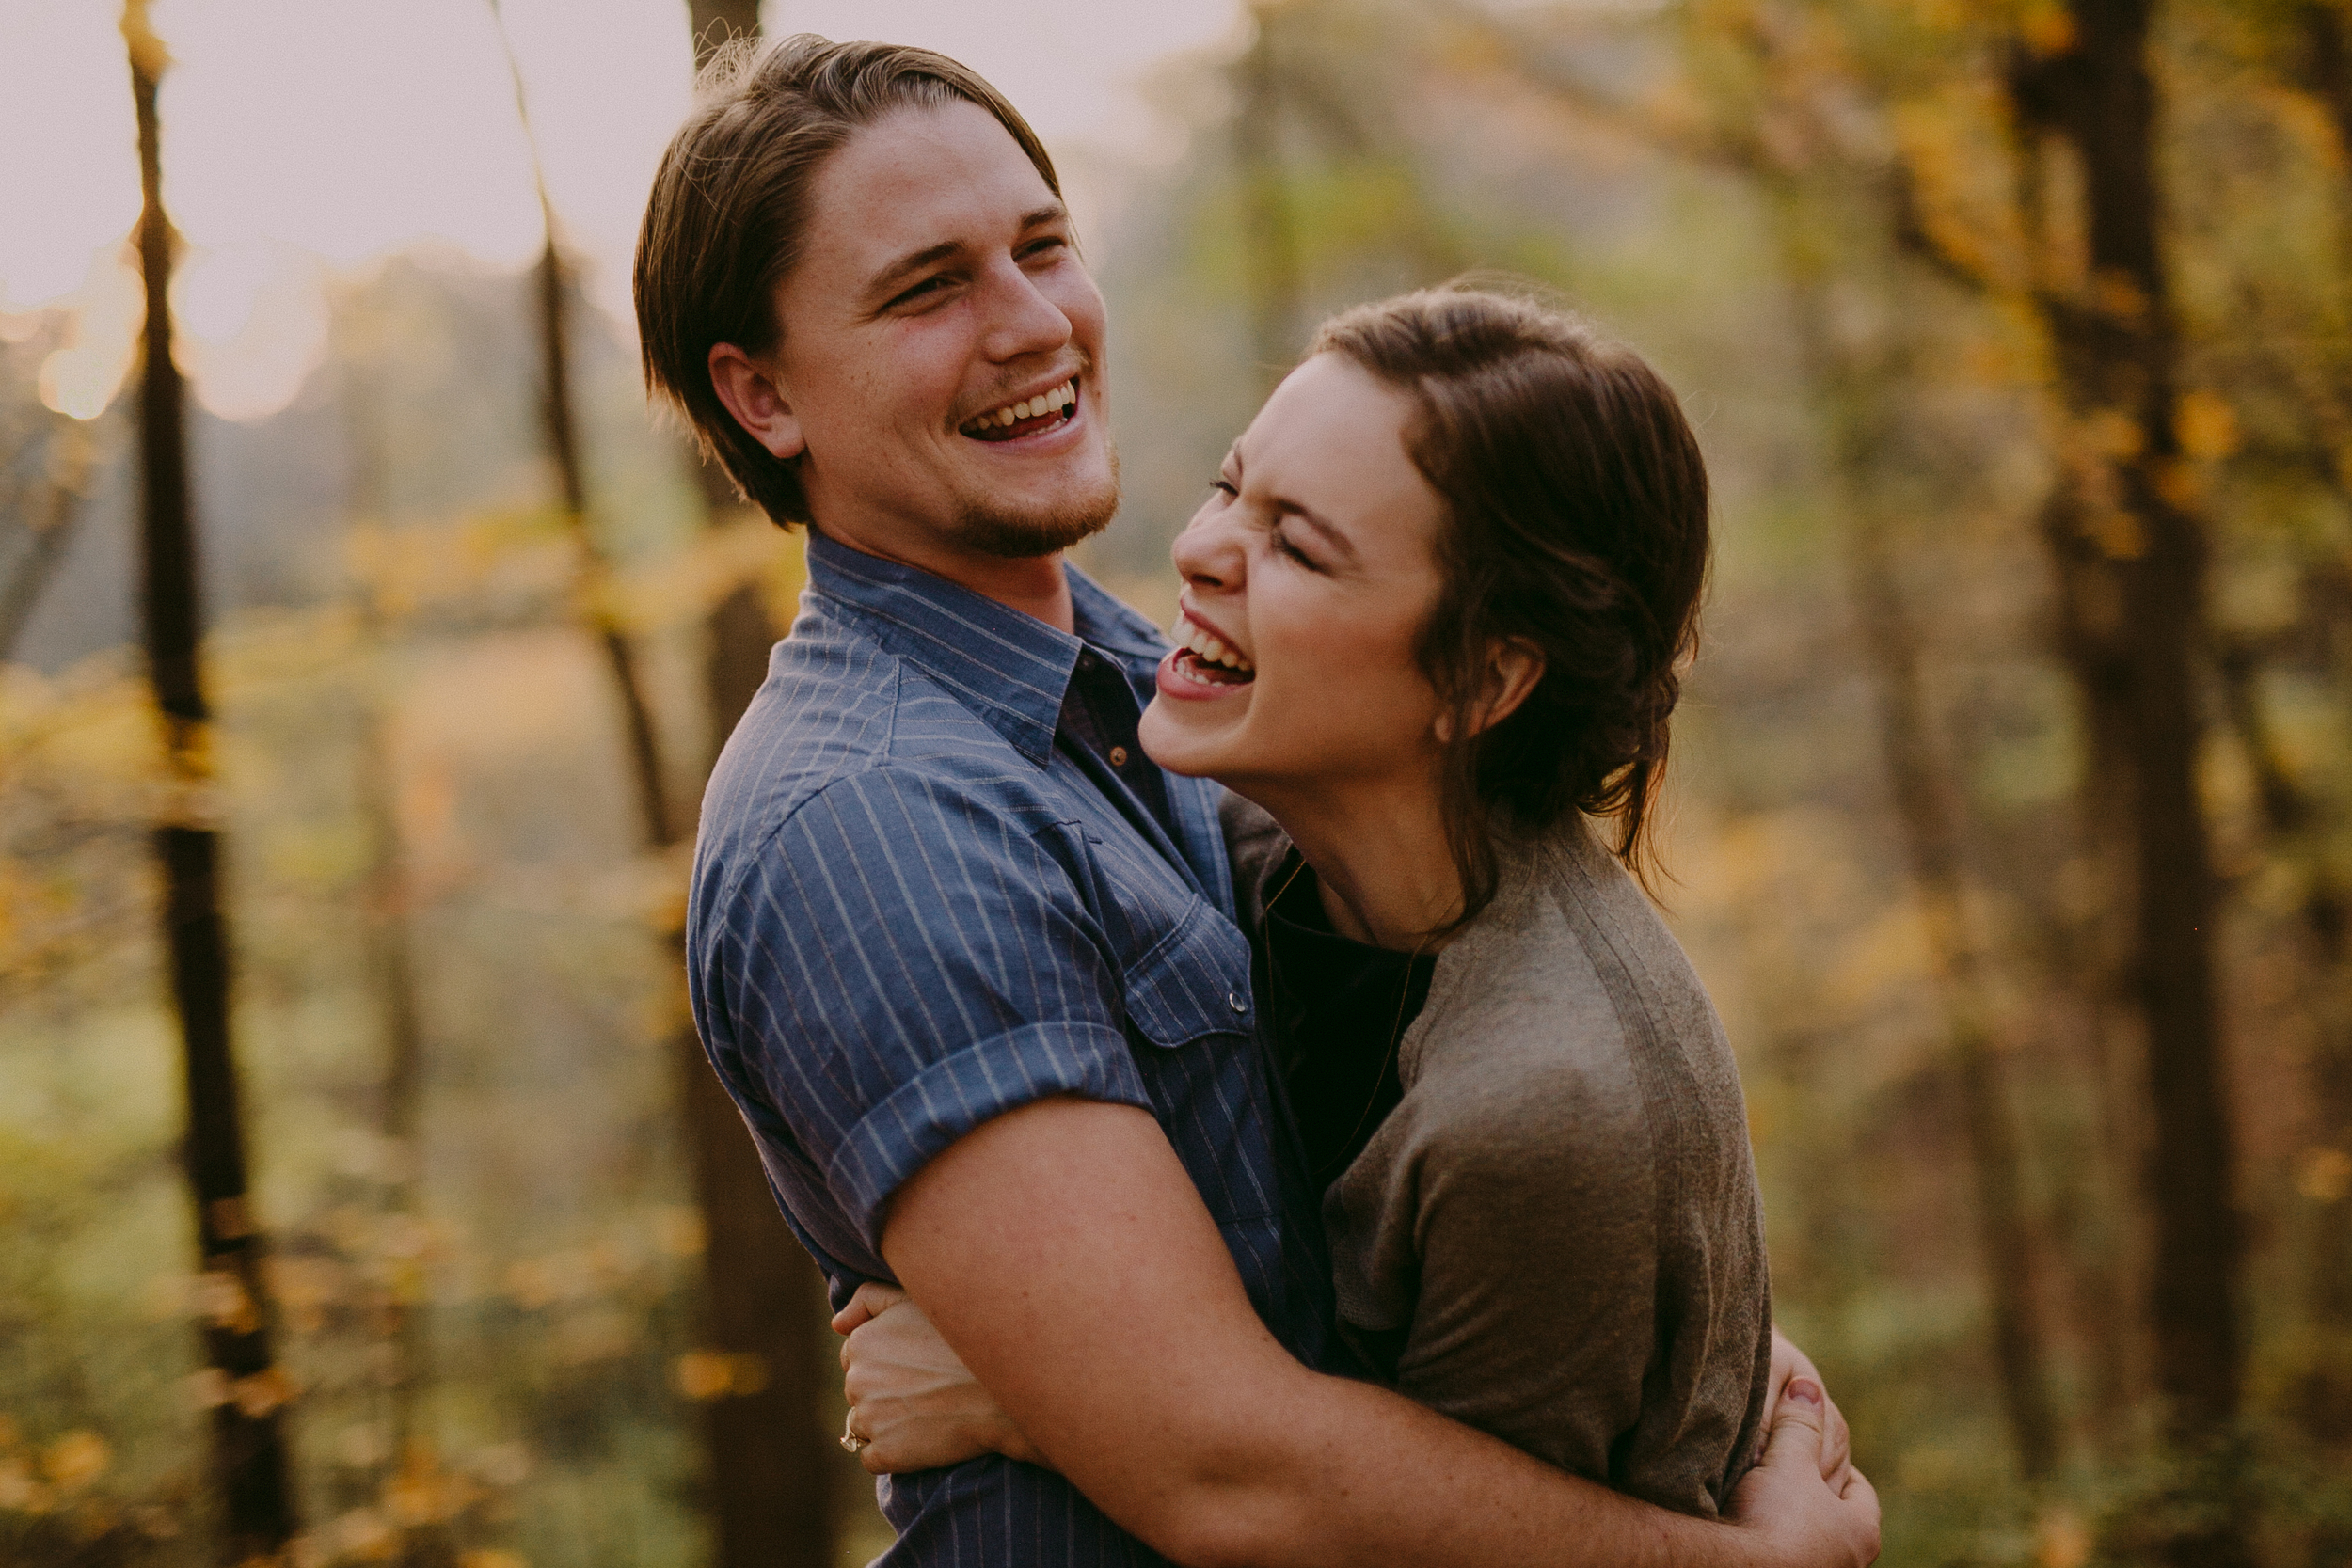 Hannah + Will Engagement Photos at Percy Warner Photography Anthology (27 of 30).jpg